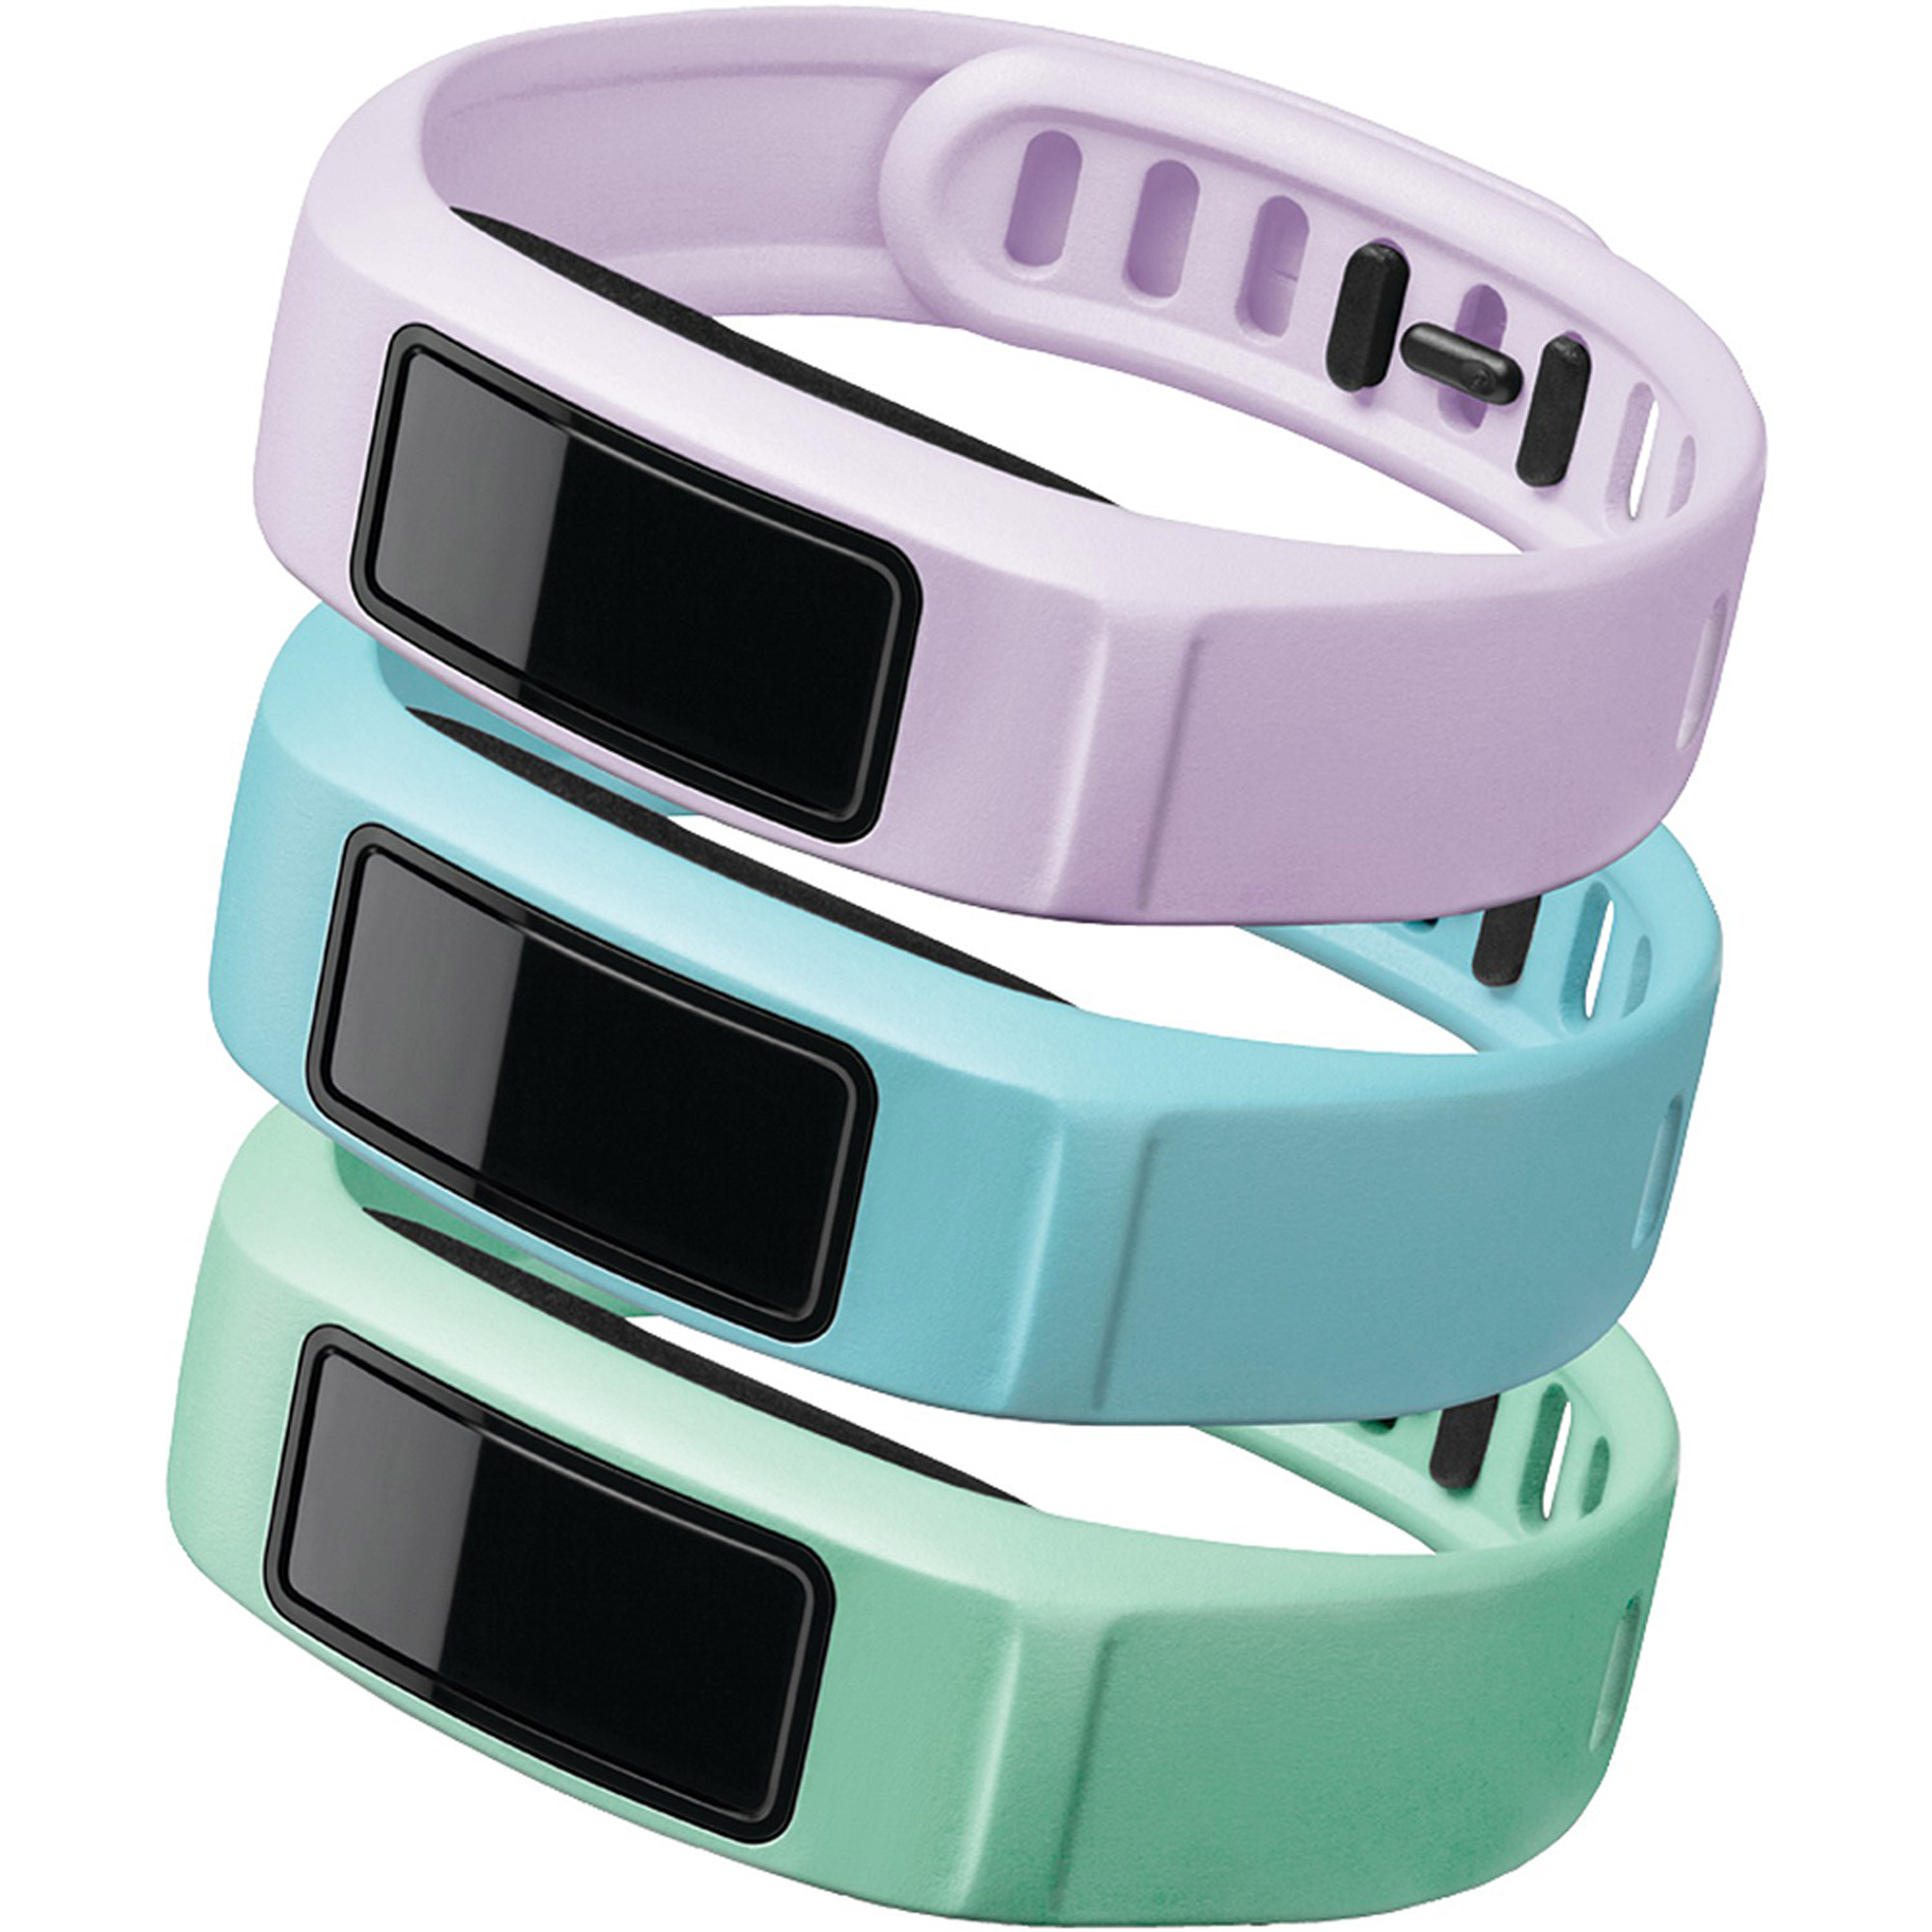 Garmin Vivofit 2 Serenity-Themed Bands, 3-Pack, Small